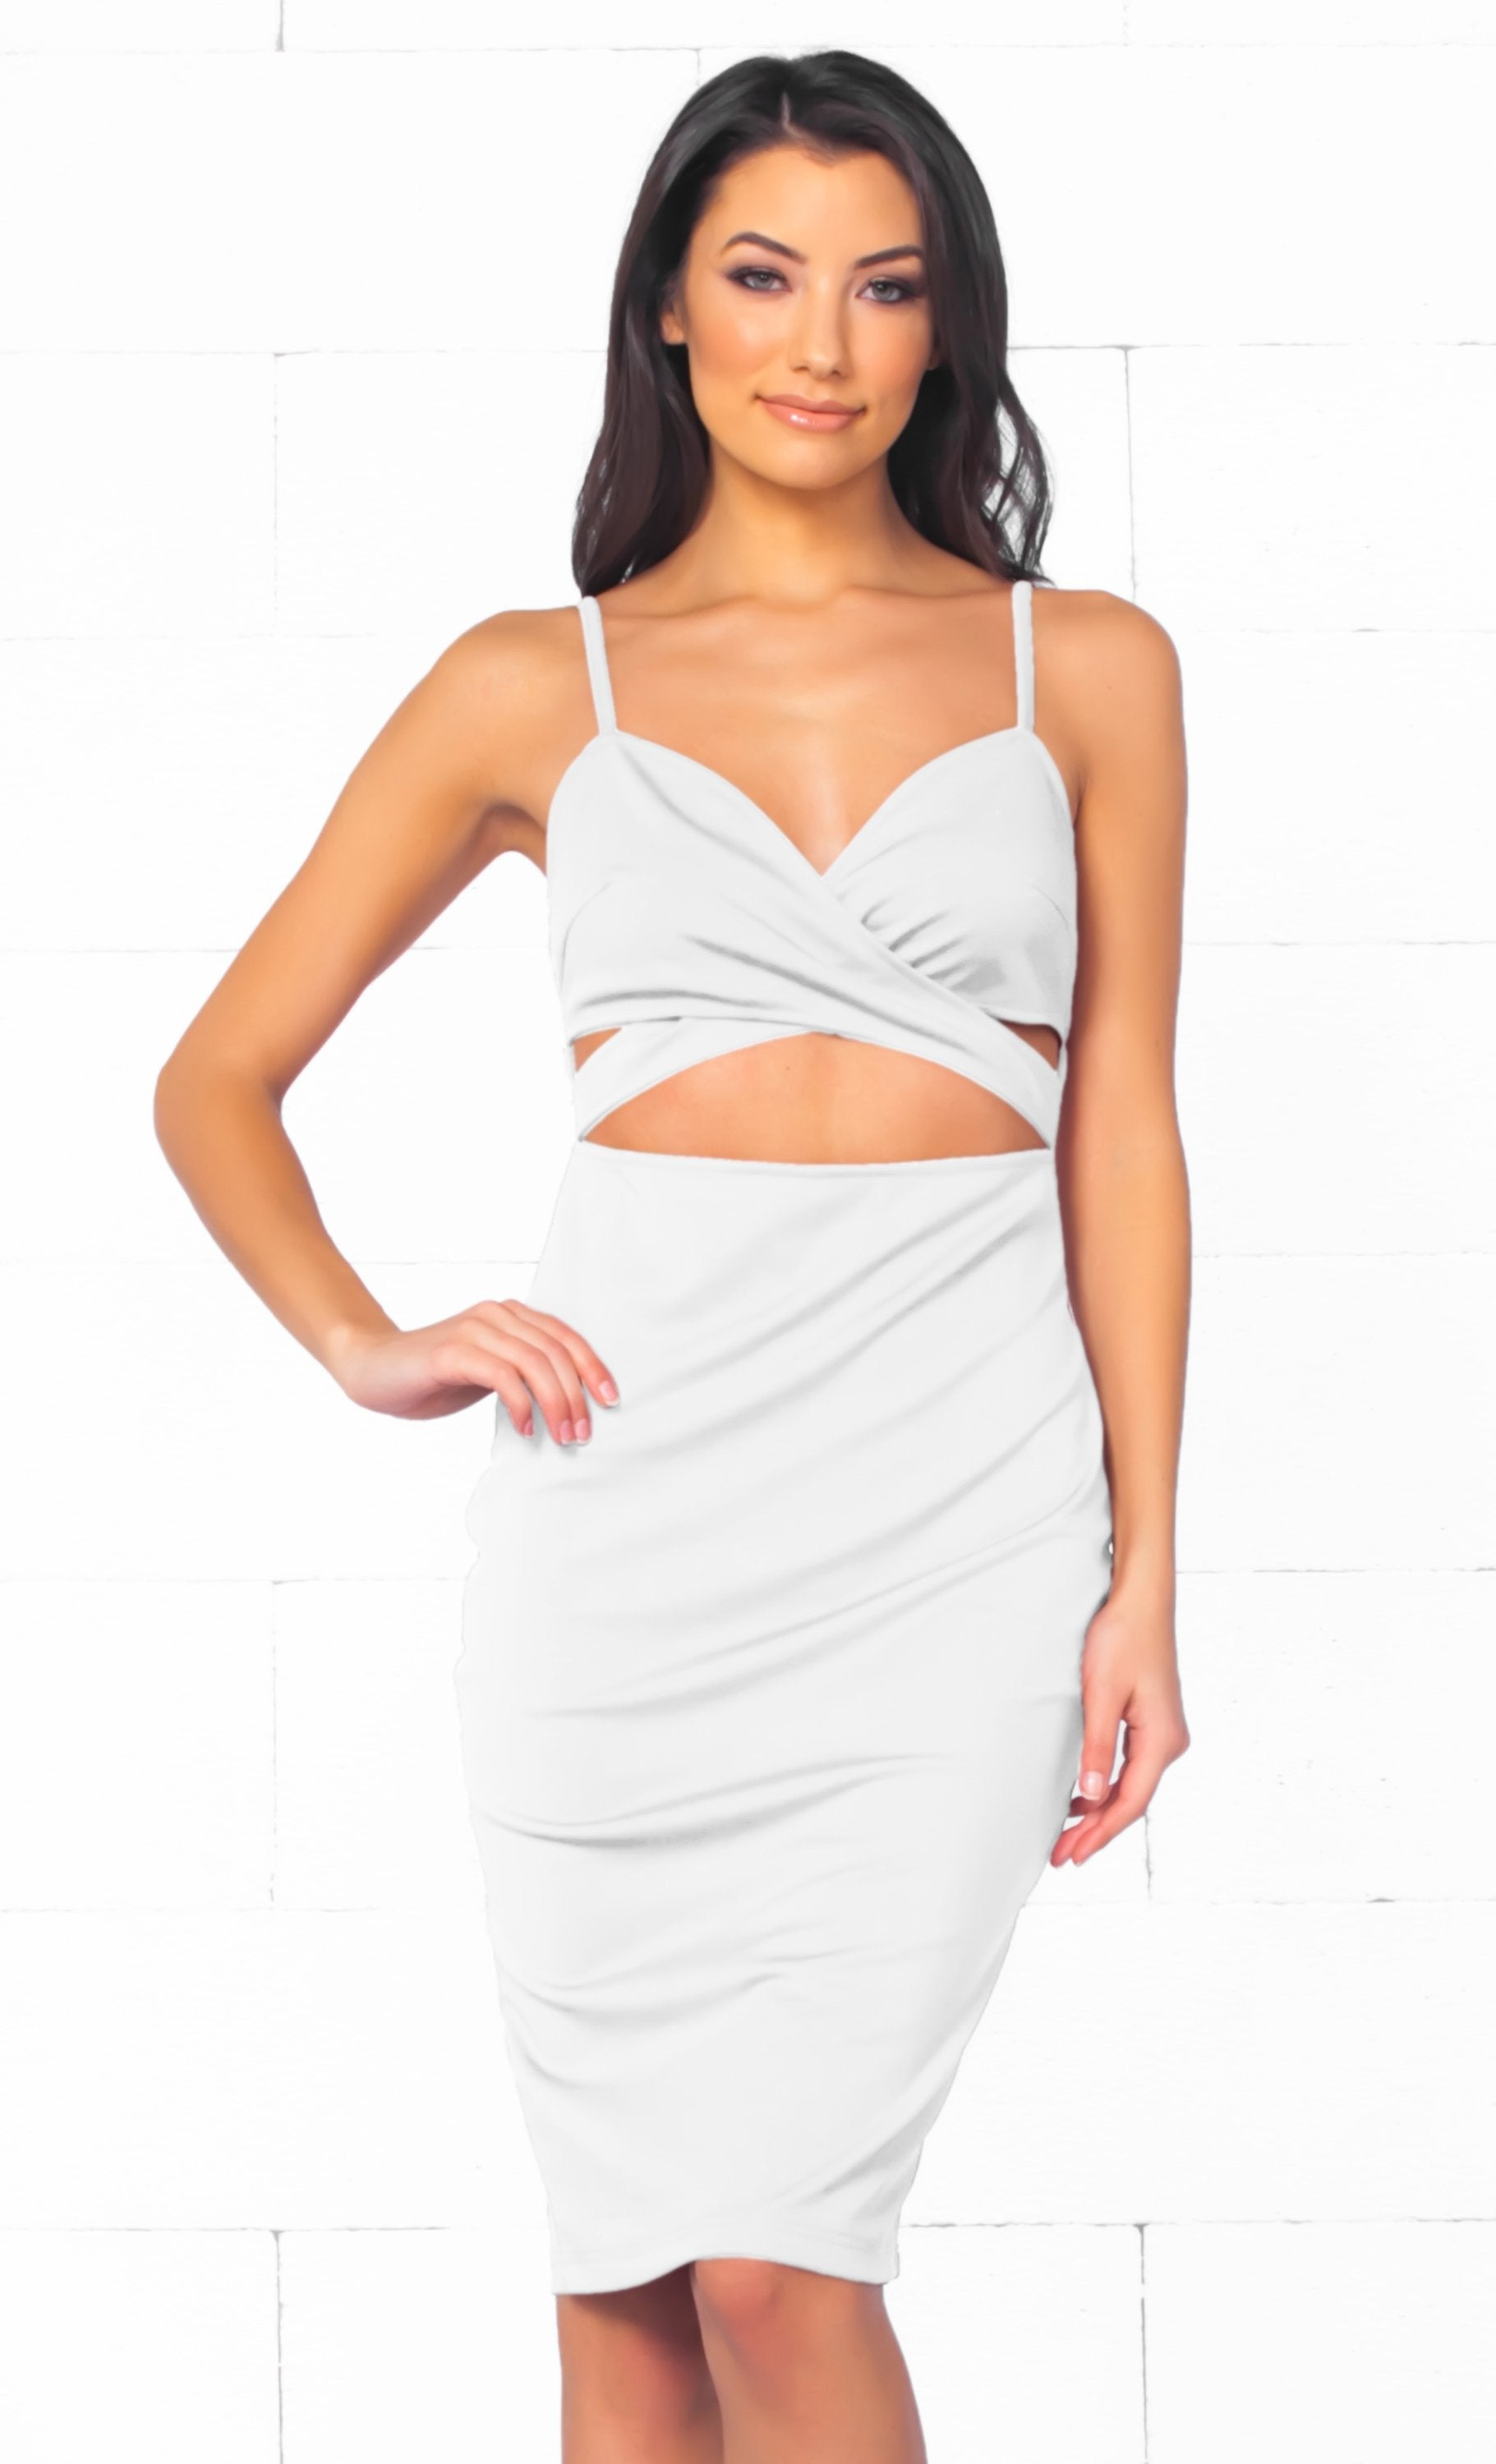 Indie XO Total Bombshell White Spaghetti Strap V Neck Cut Out Bodycon Midi Dress - Just Ours! - Sold Out